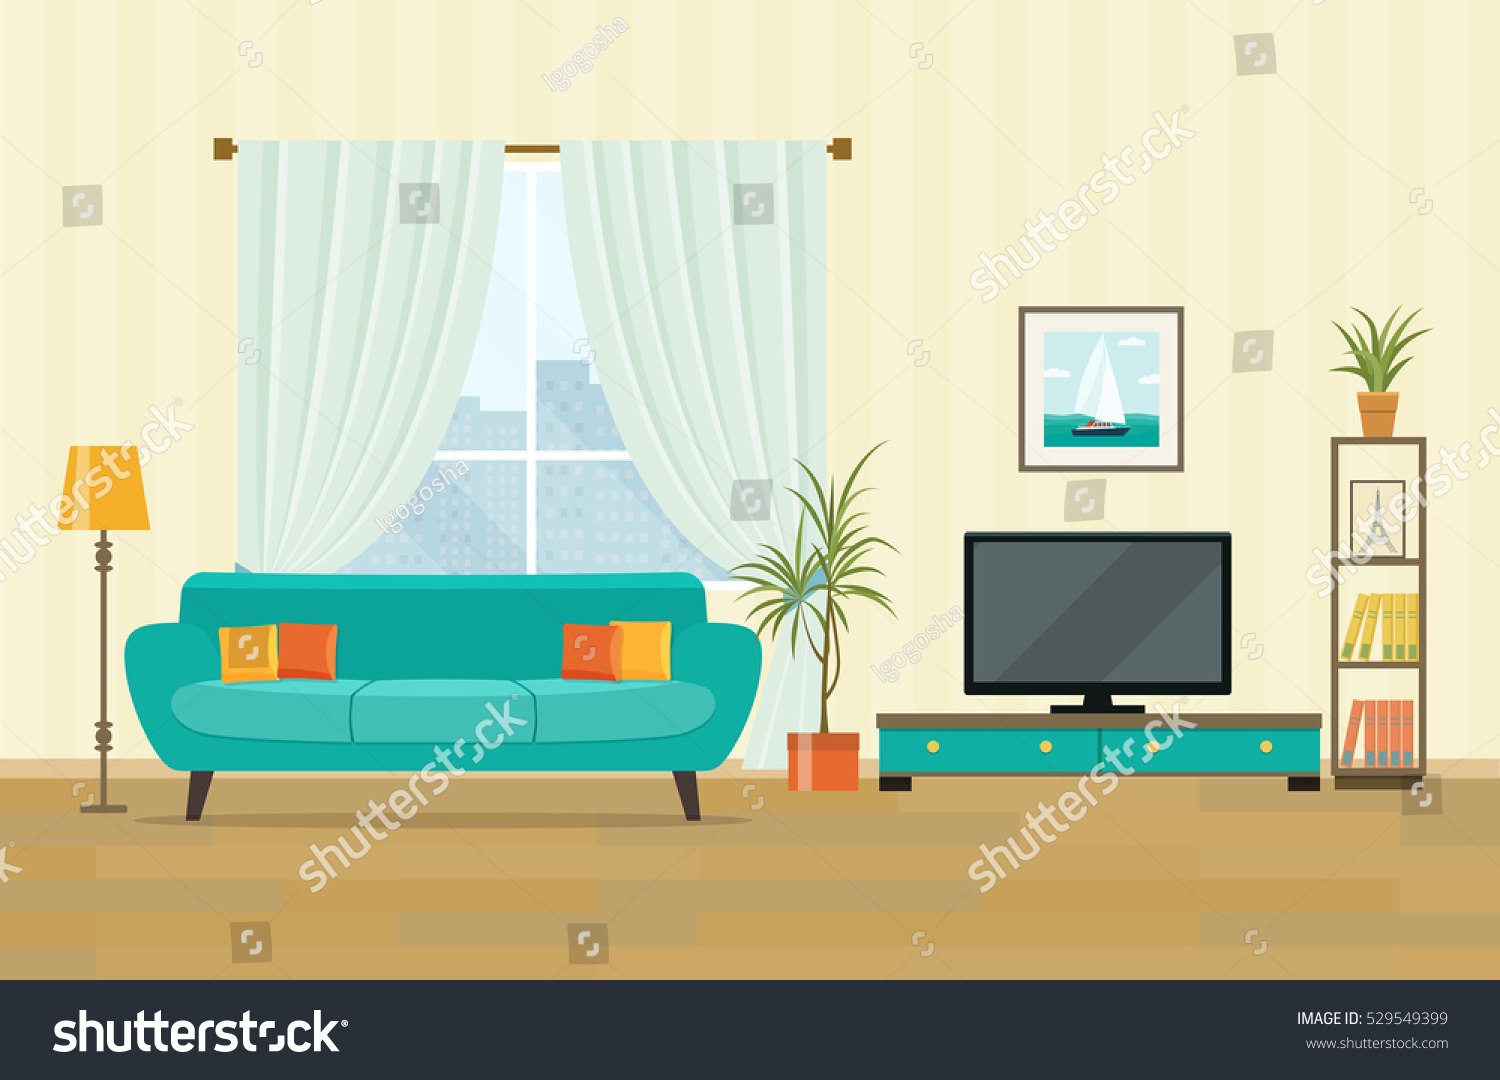 Living room interior design furniture sofa stock vector for Room design vector